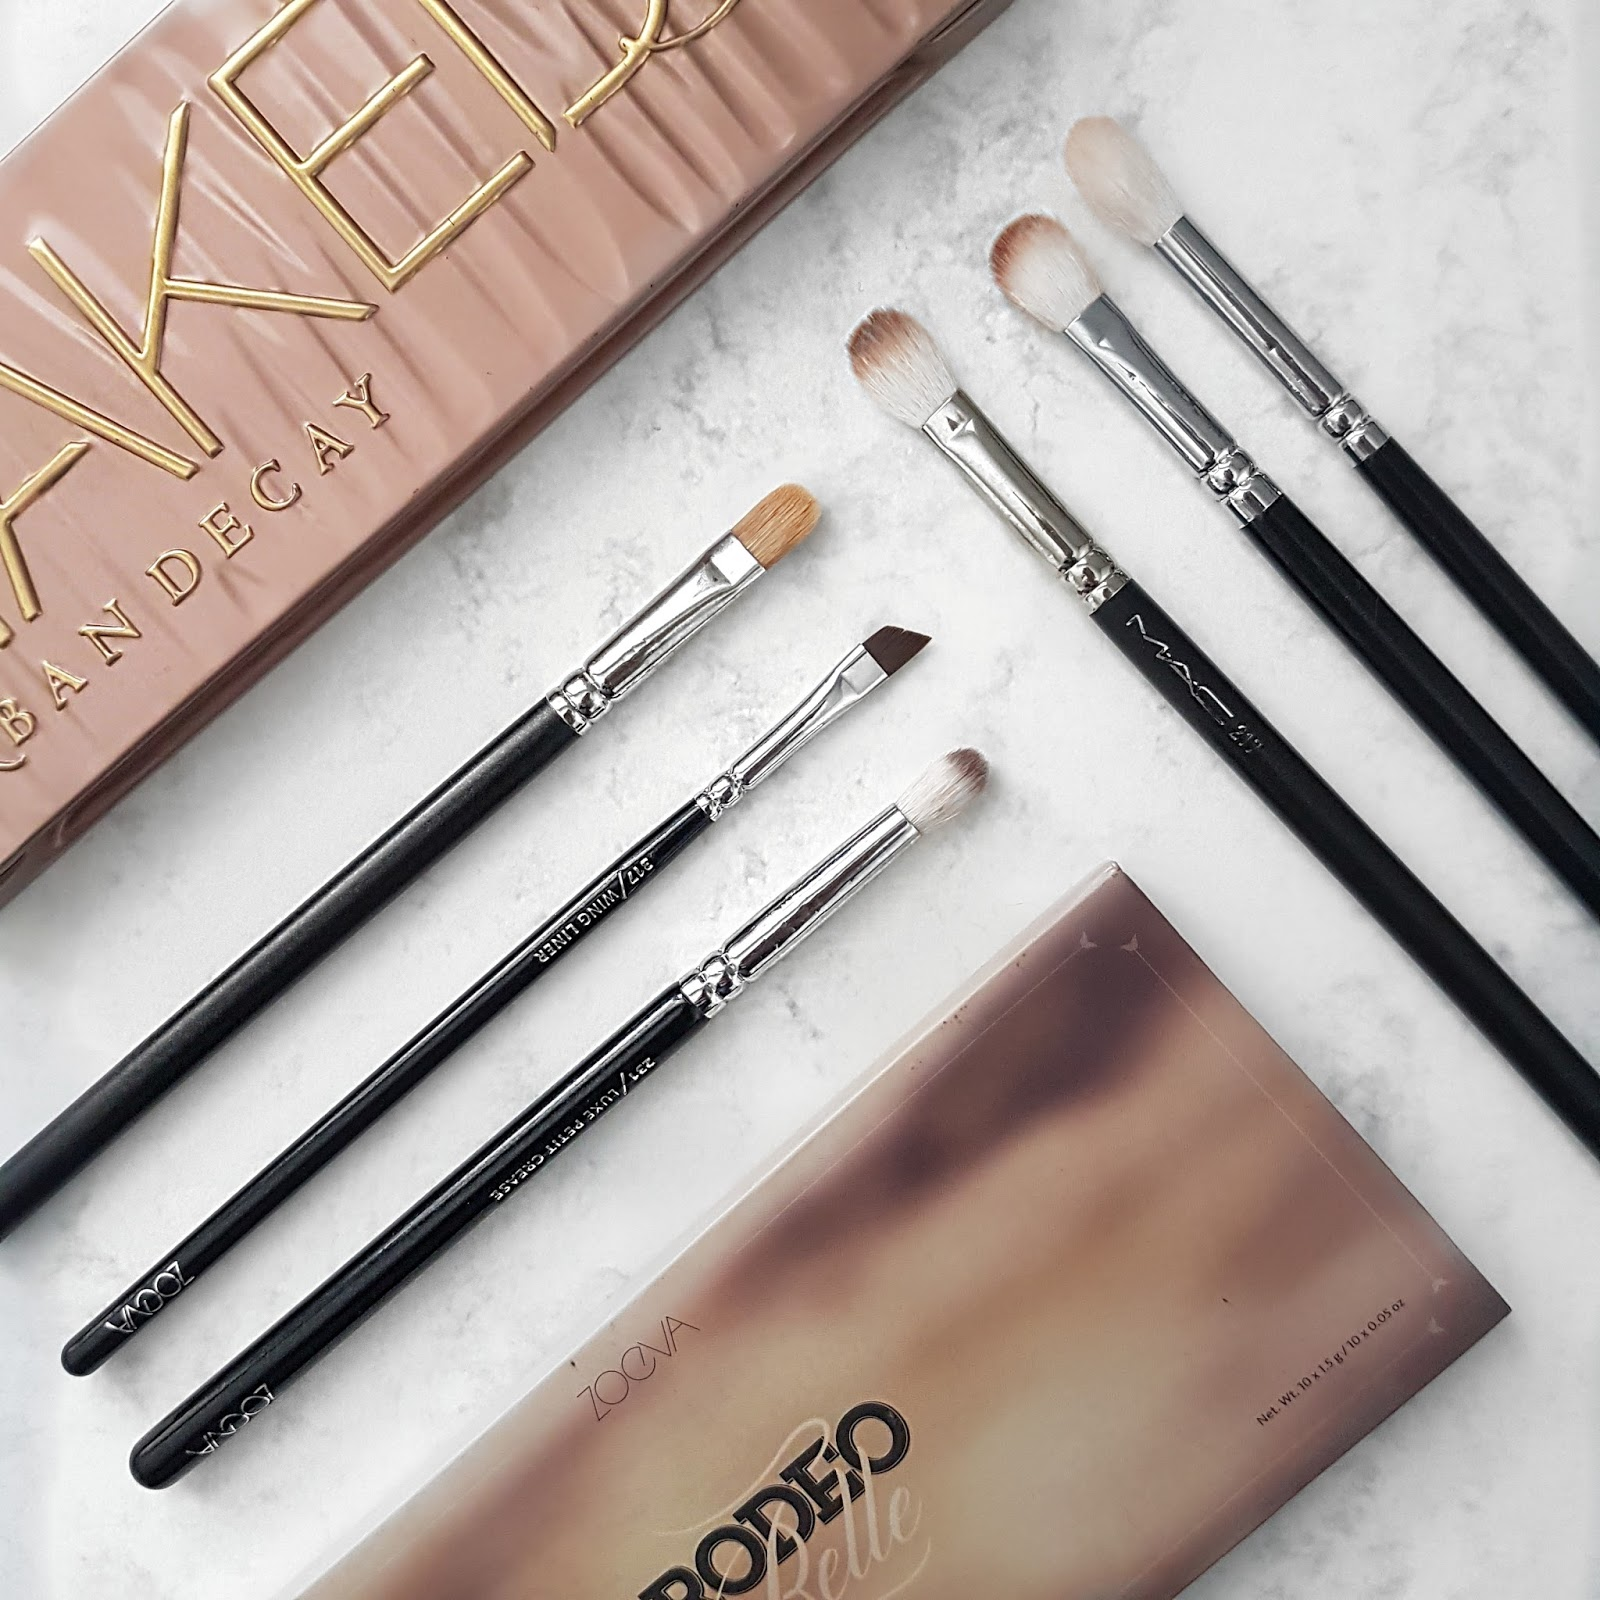 Zoeva make up brushes and eye shadow palettes